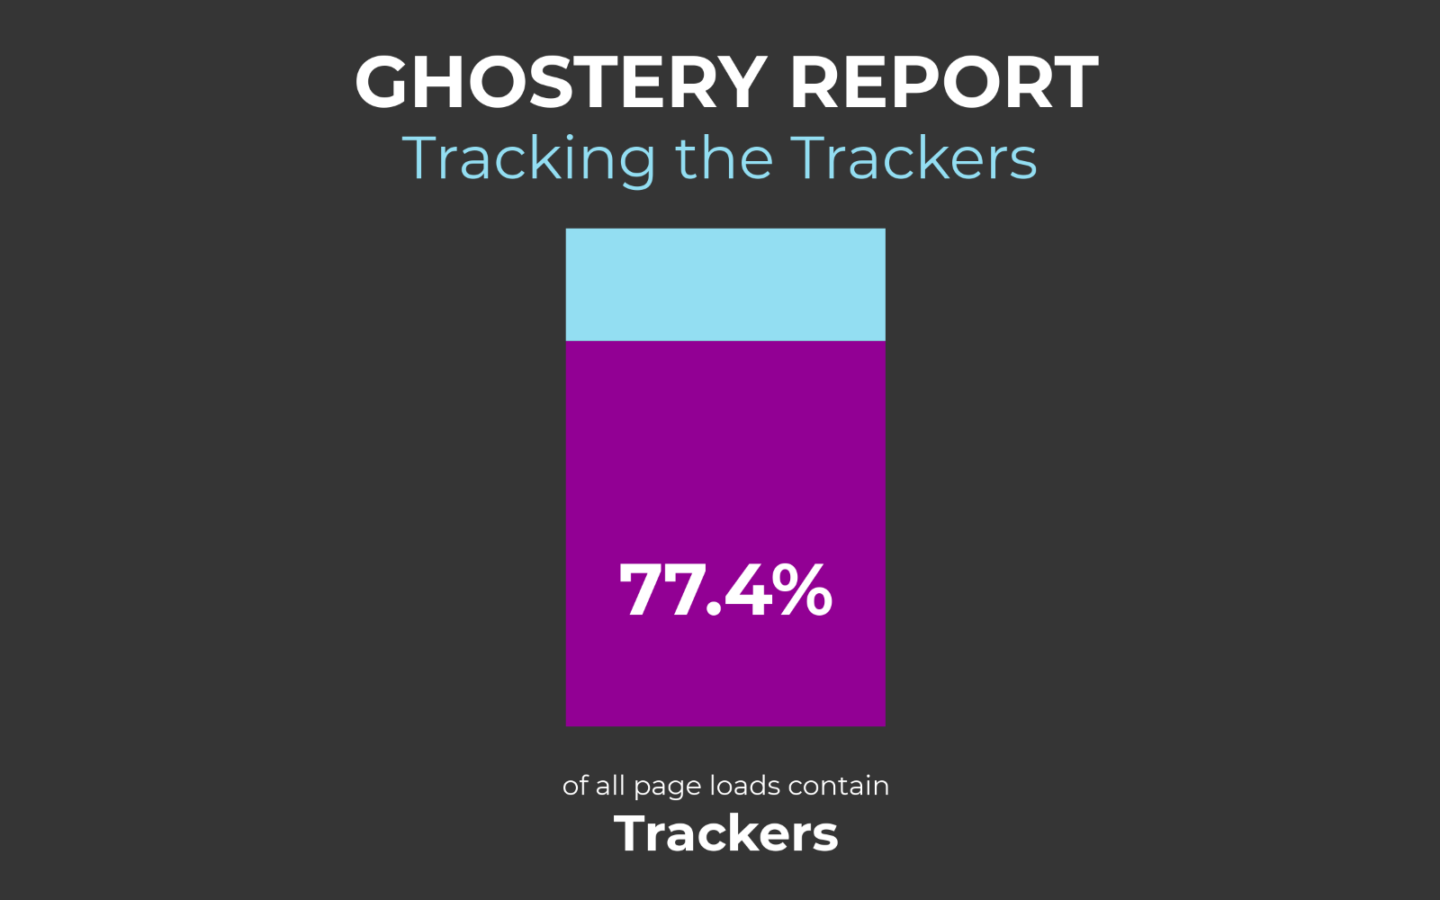 Ghostery Report - Tracking the Trackers